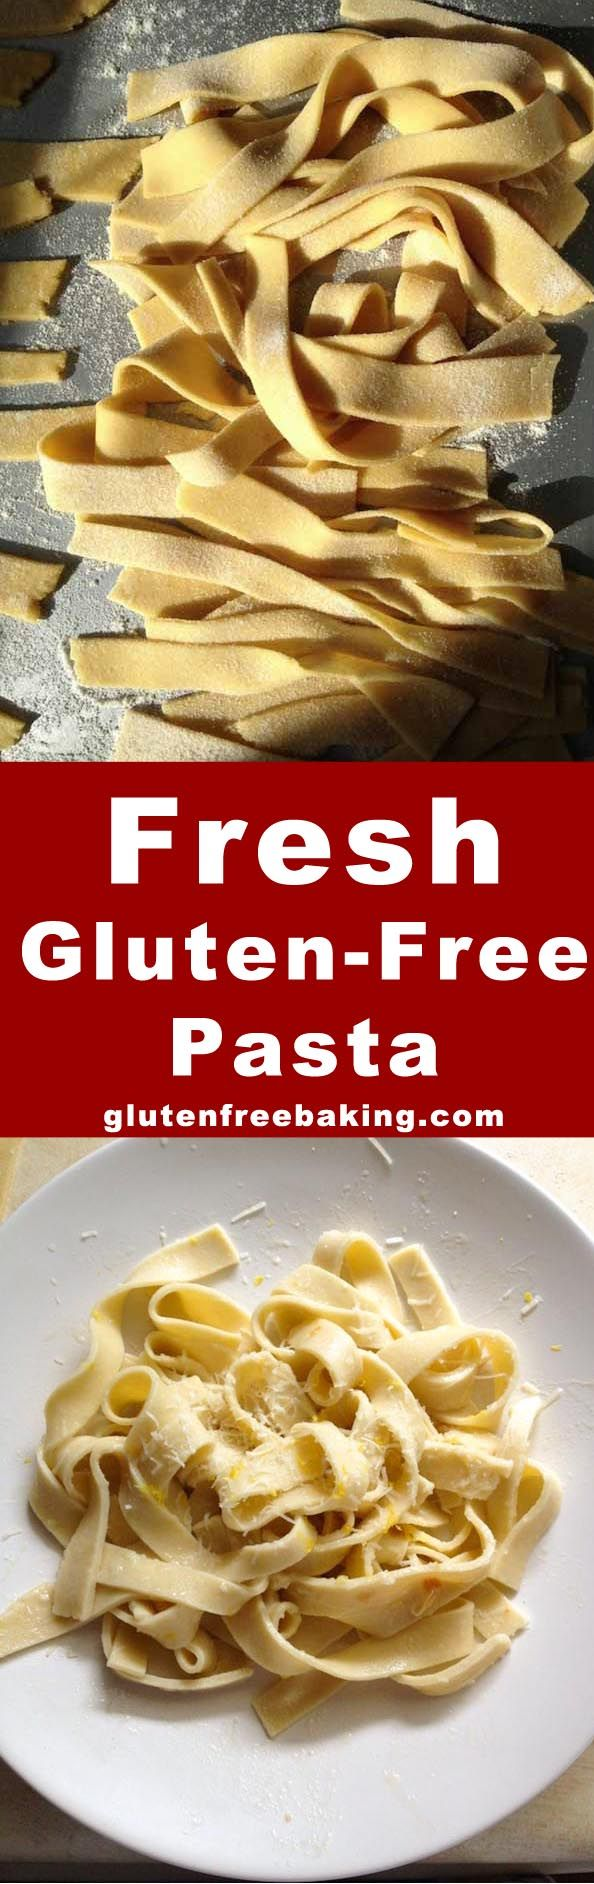 It's easy to make fresh gluten-free pasta. You only need 4 ingredients and 25 minutes.